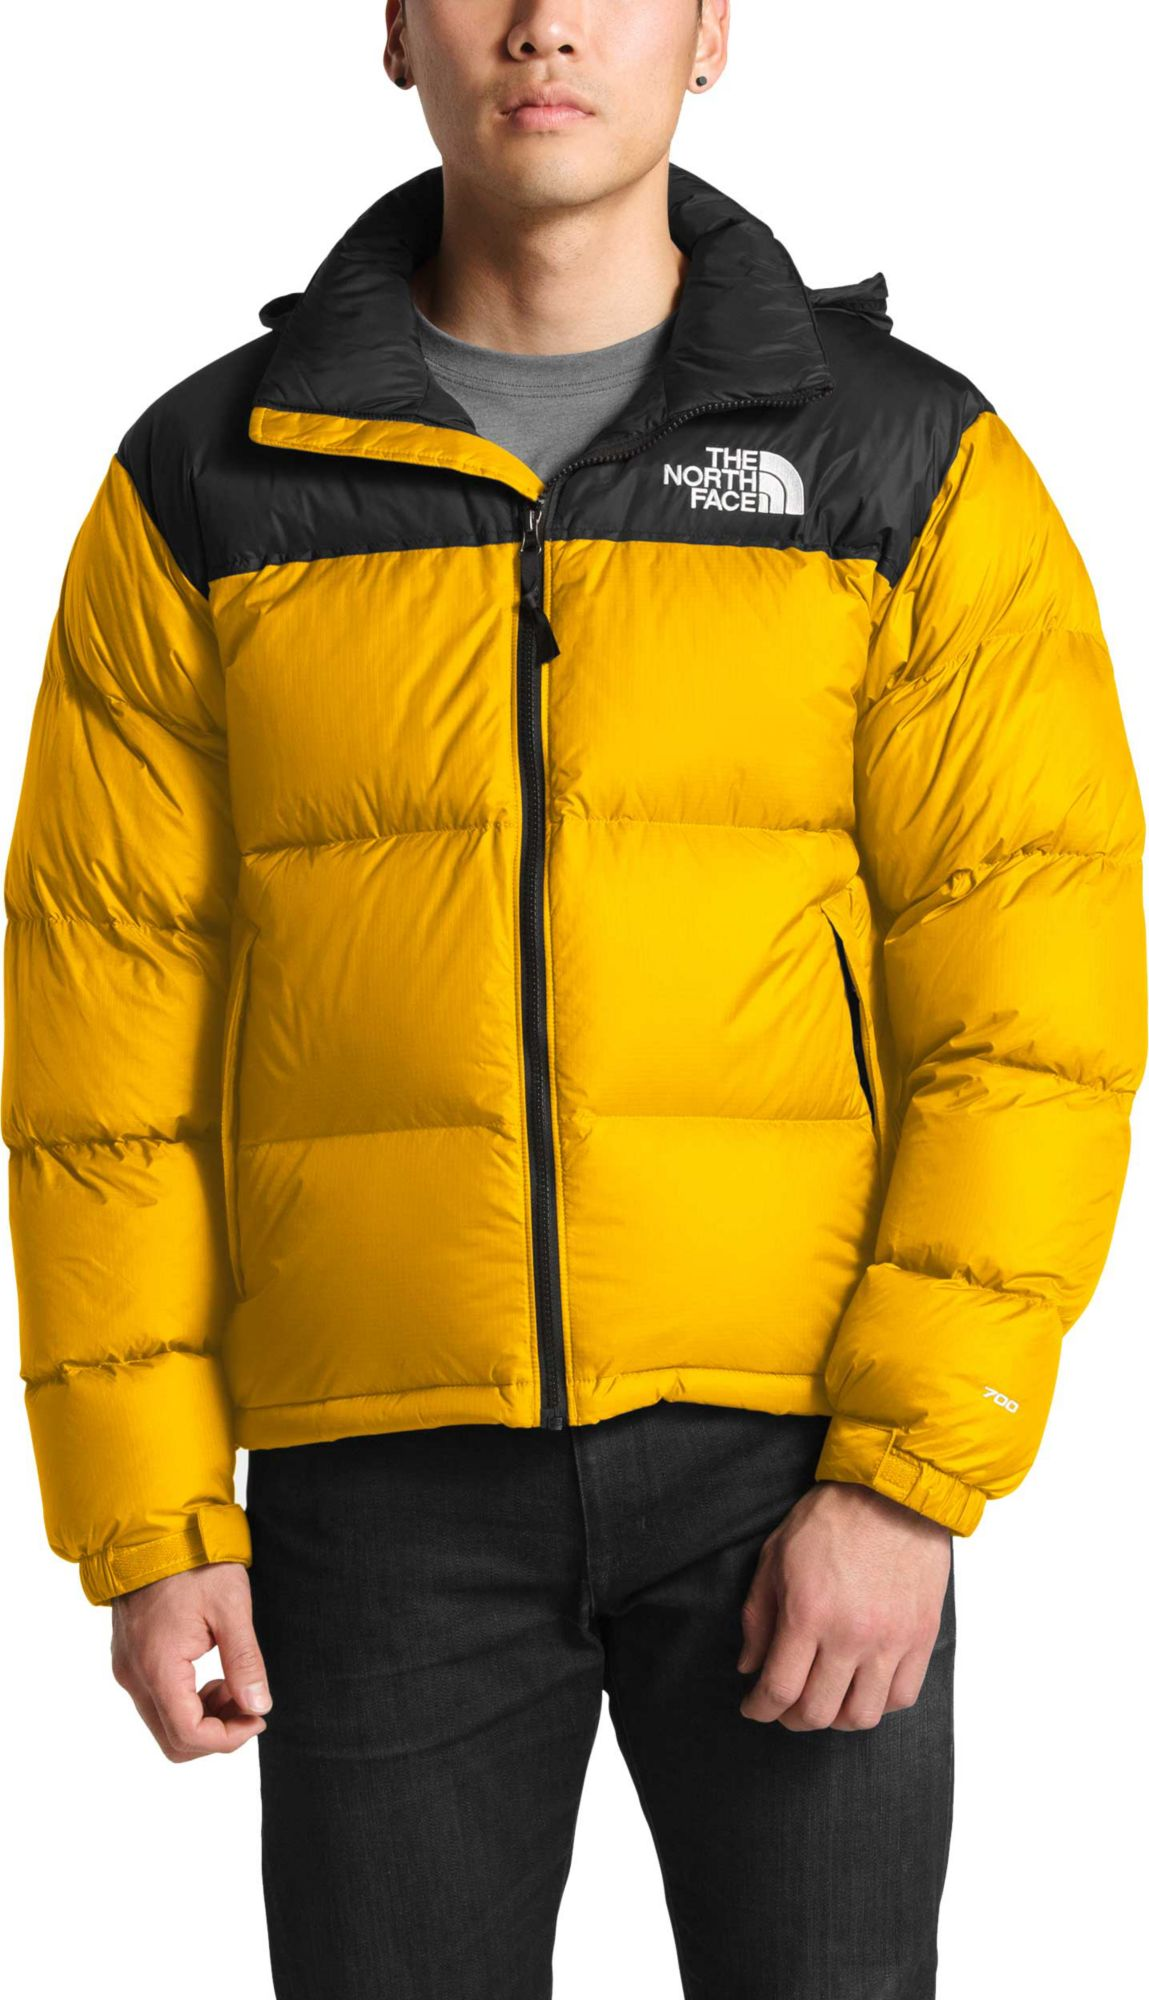 86fc484c3 The North Face Men's 1996 Retro Nuptse Jacket in 2019 | Products ...